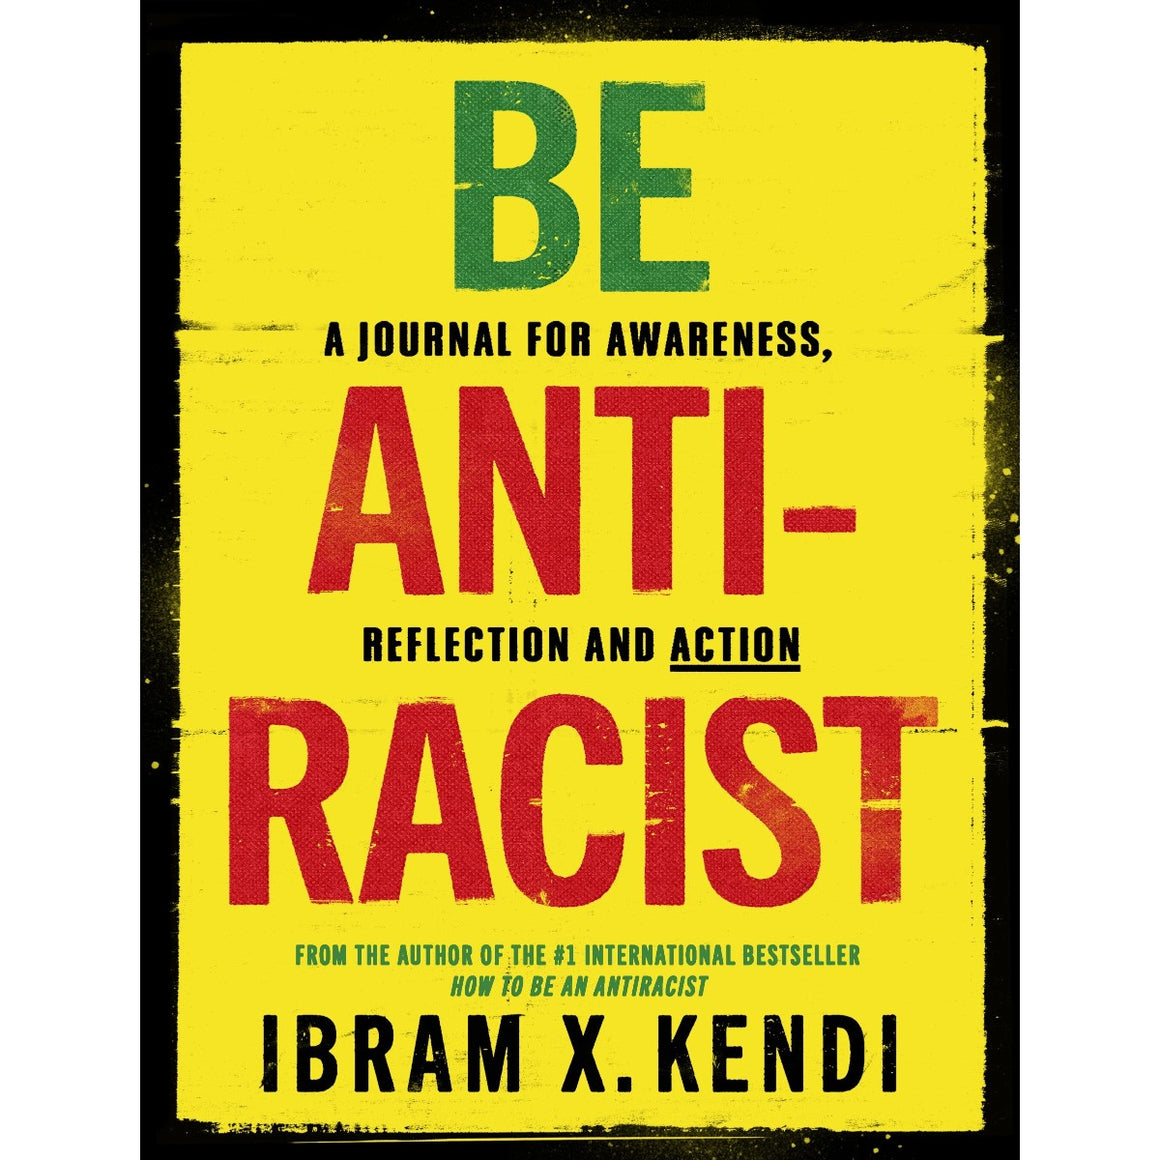 A book cover in yellow with black red and green type.